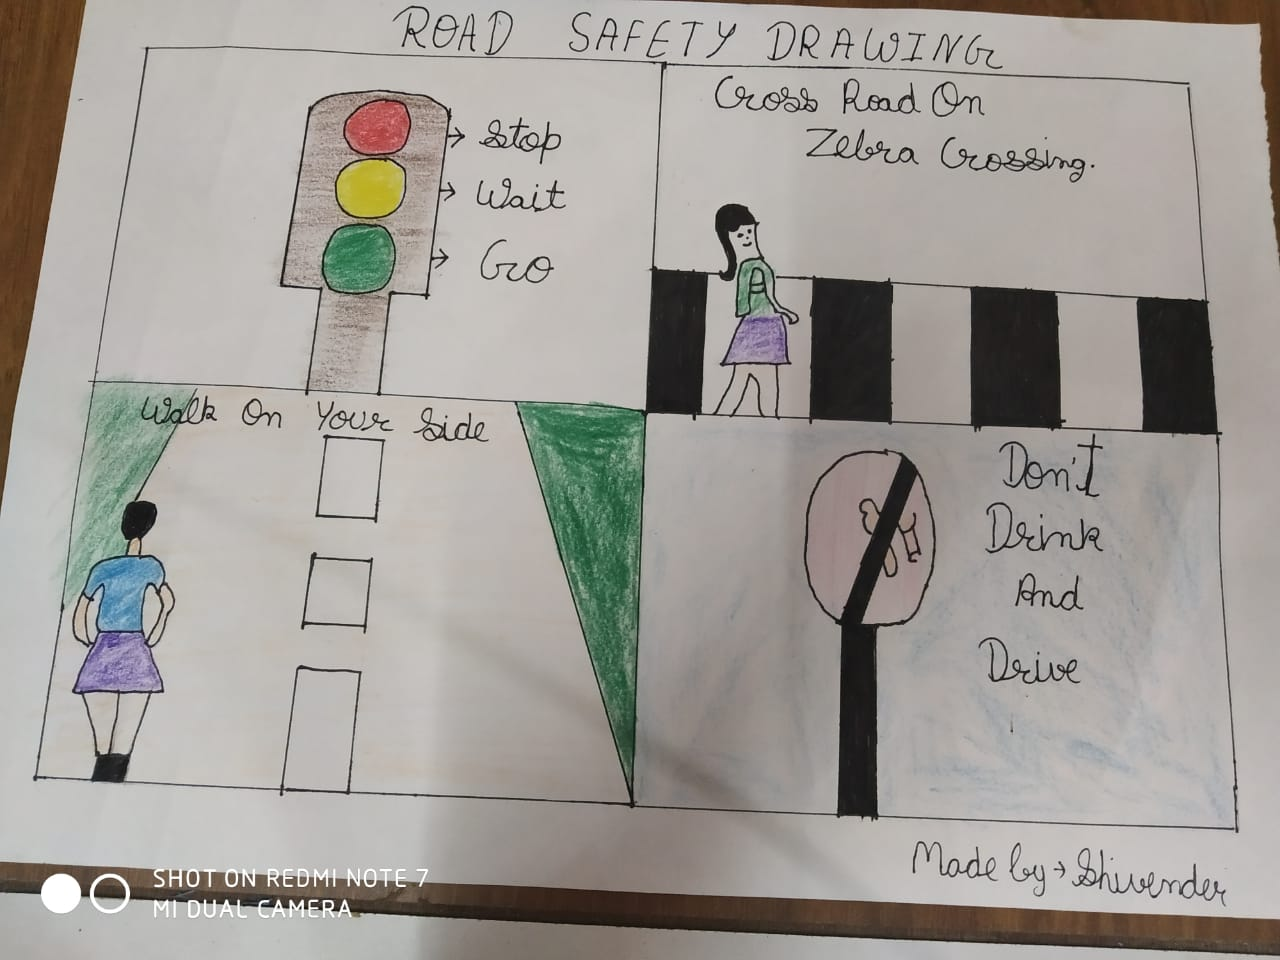 road safety poster making competition